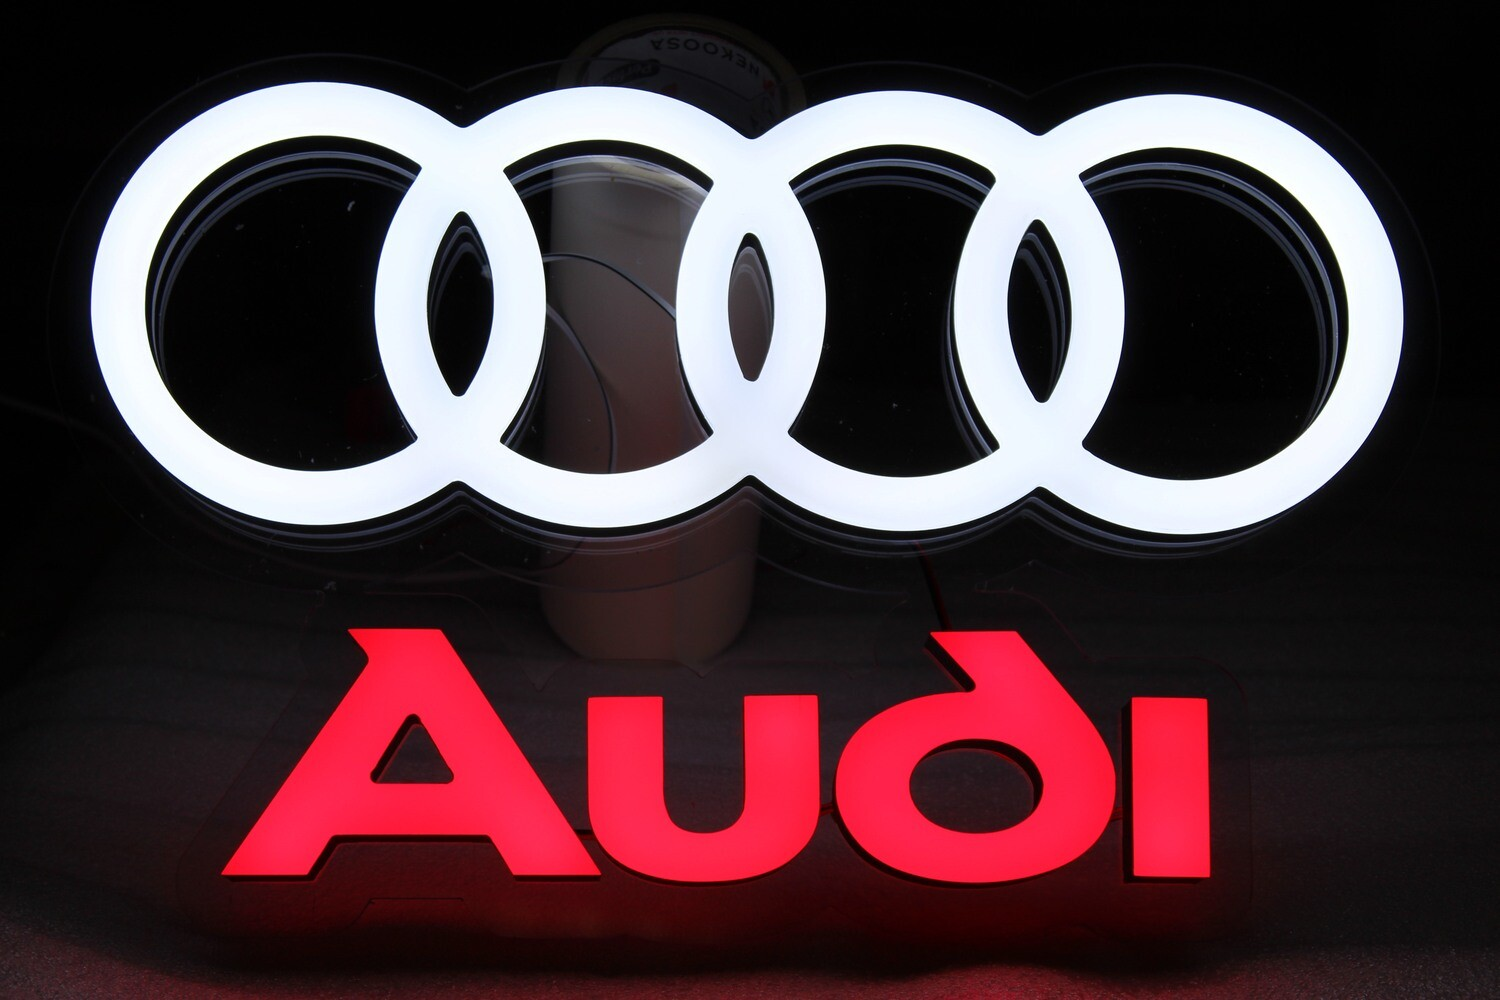 12v or 24v Illuminated Audi Sign